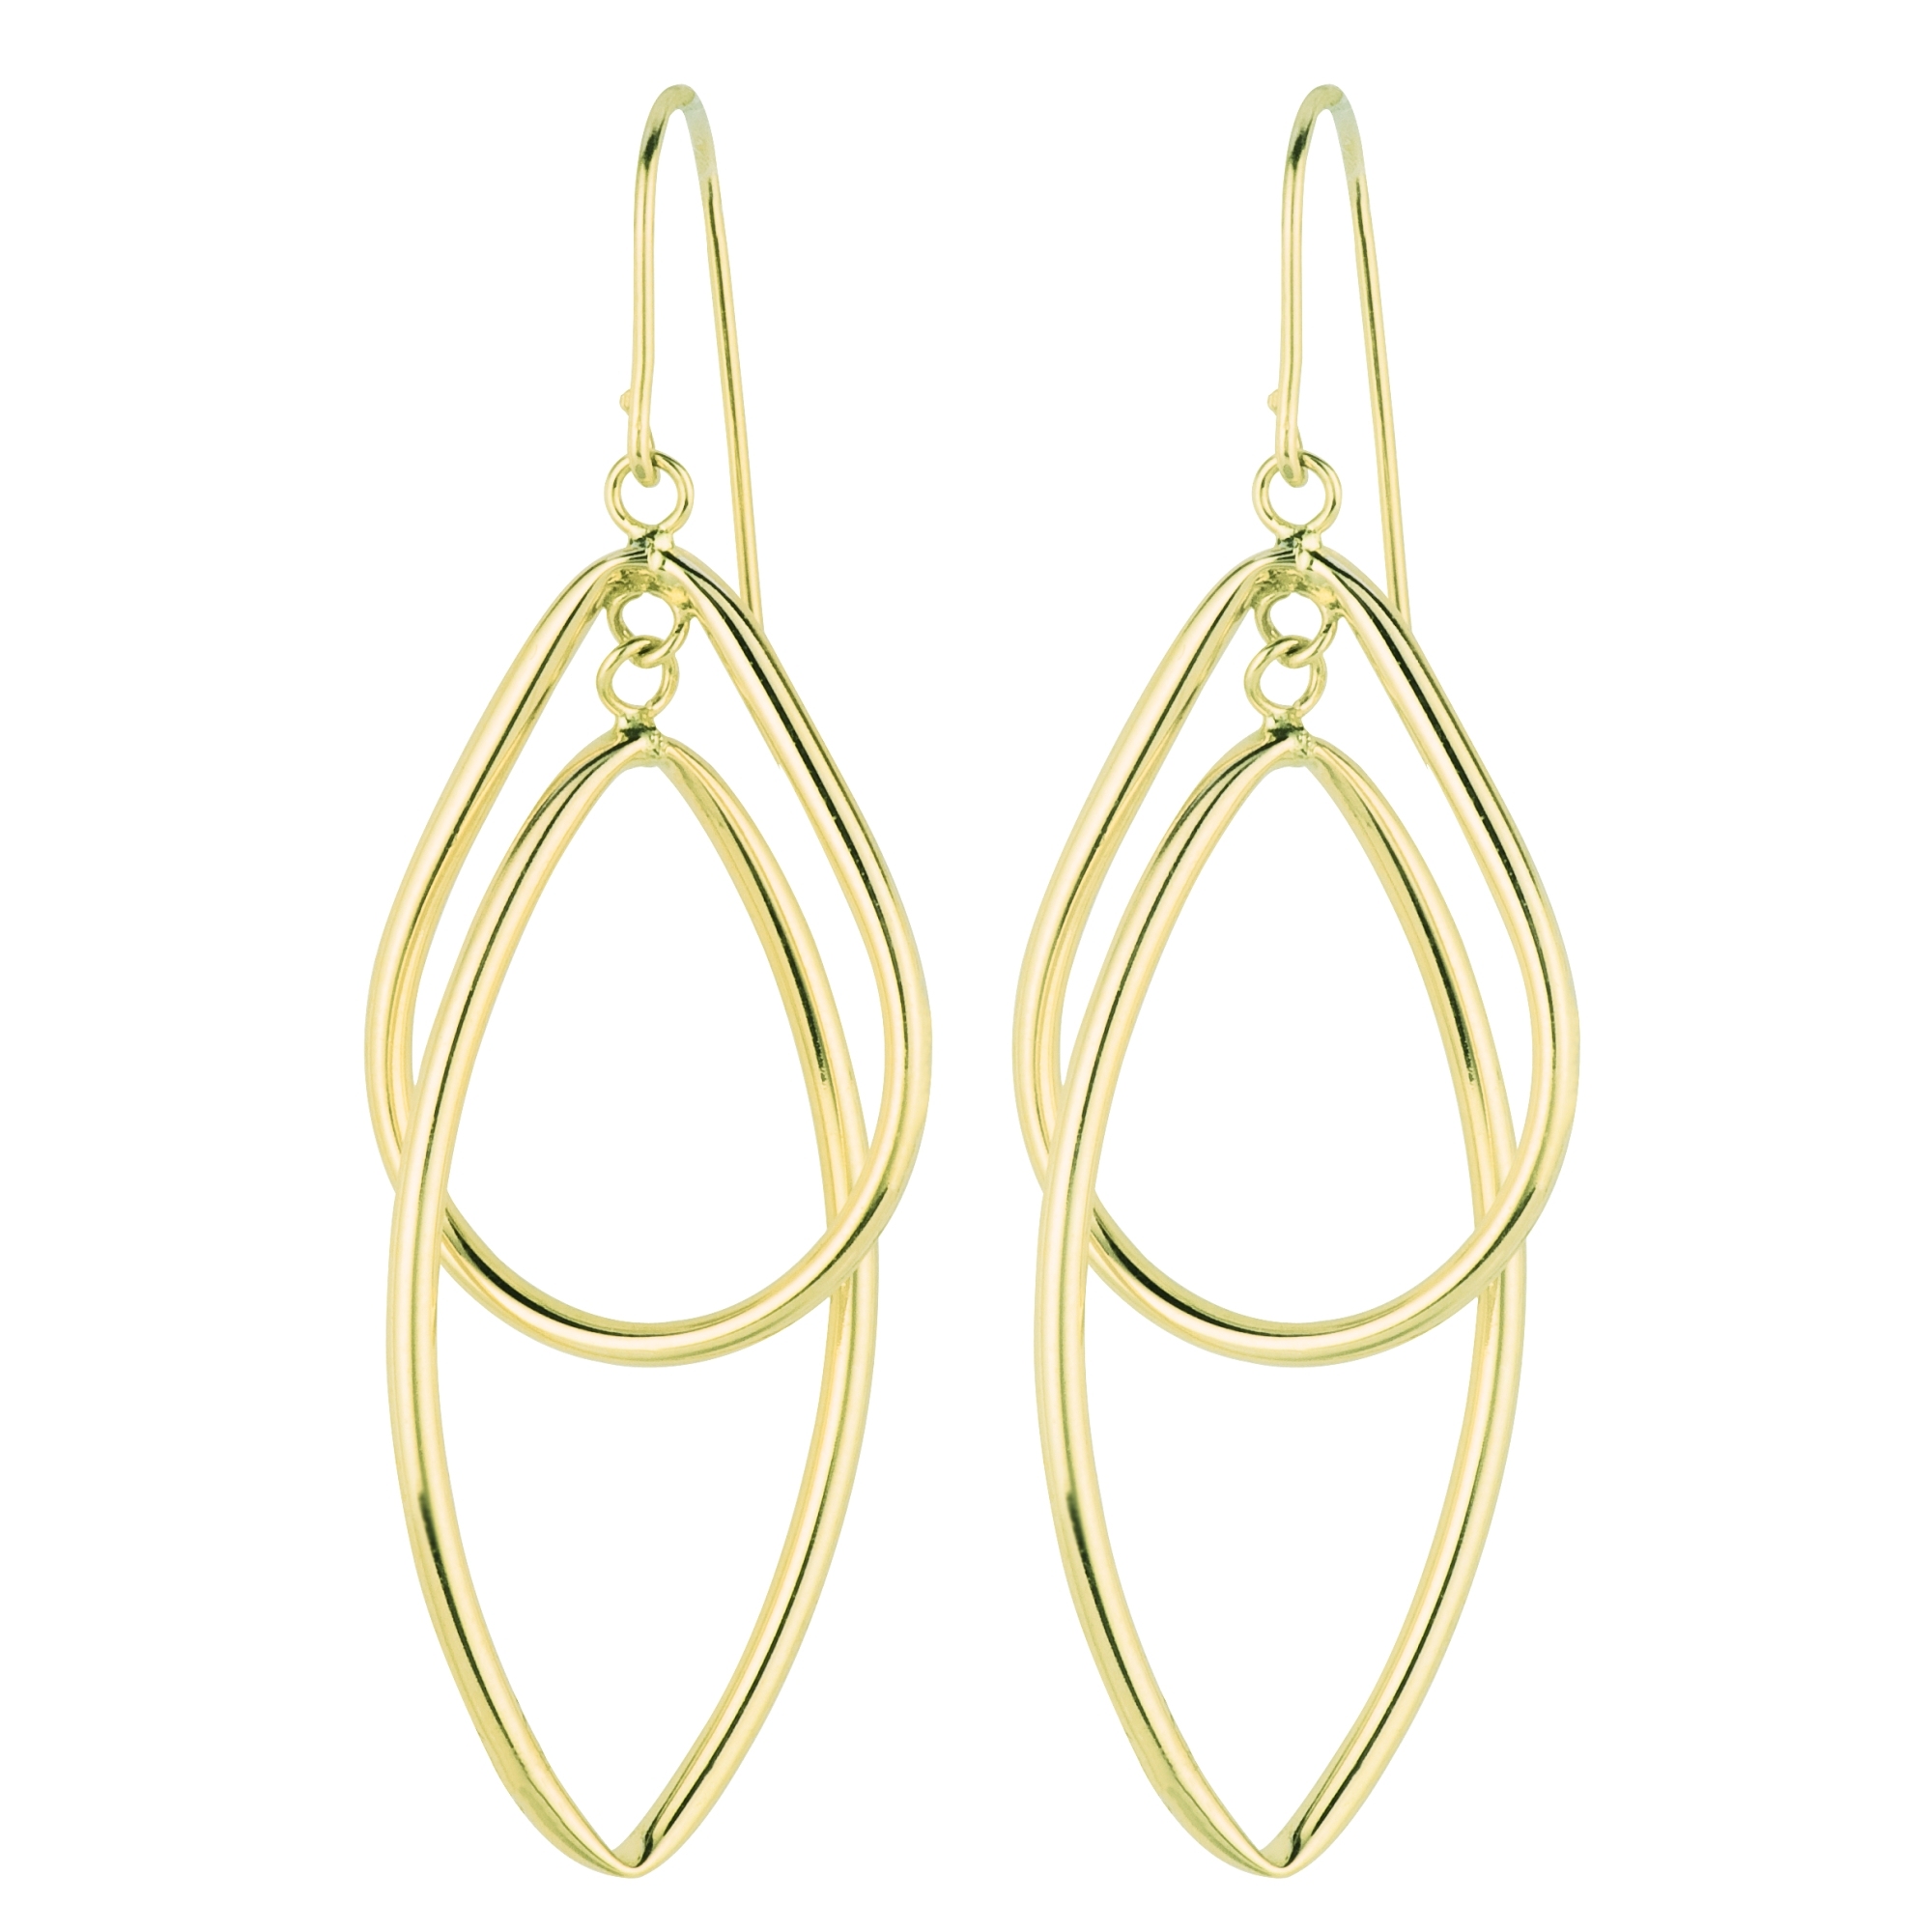 14K Earrings by Royal Chain